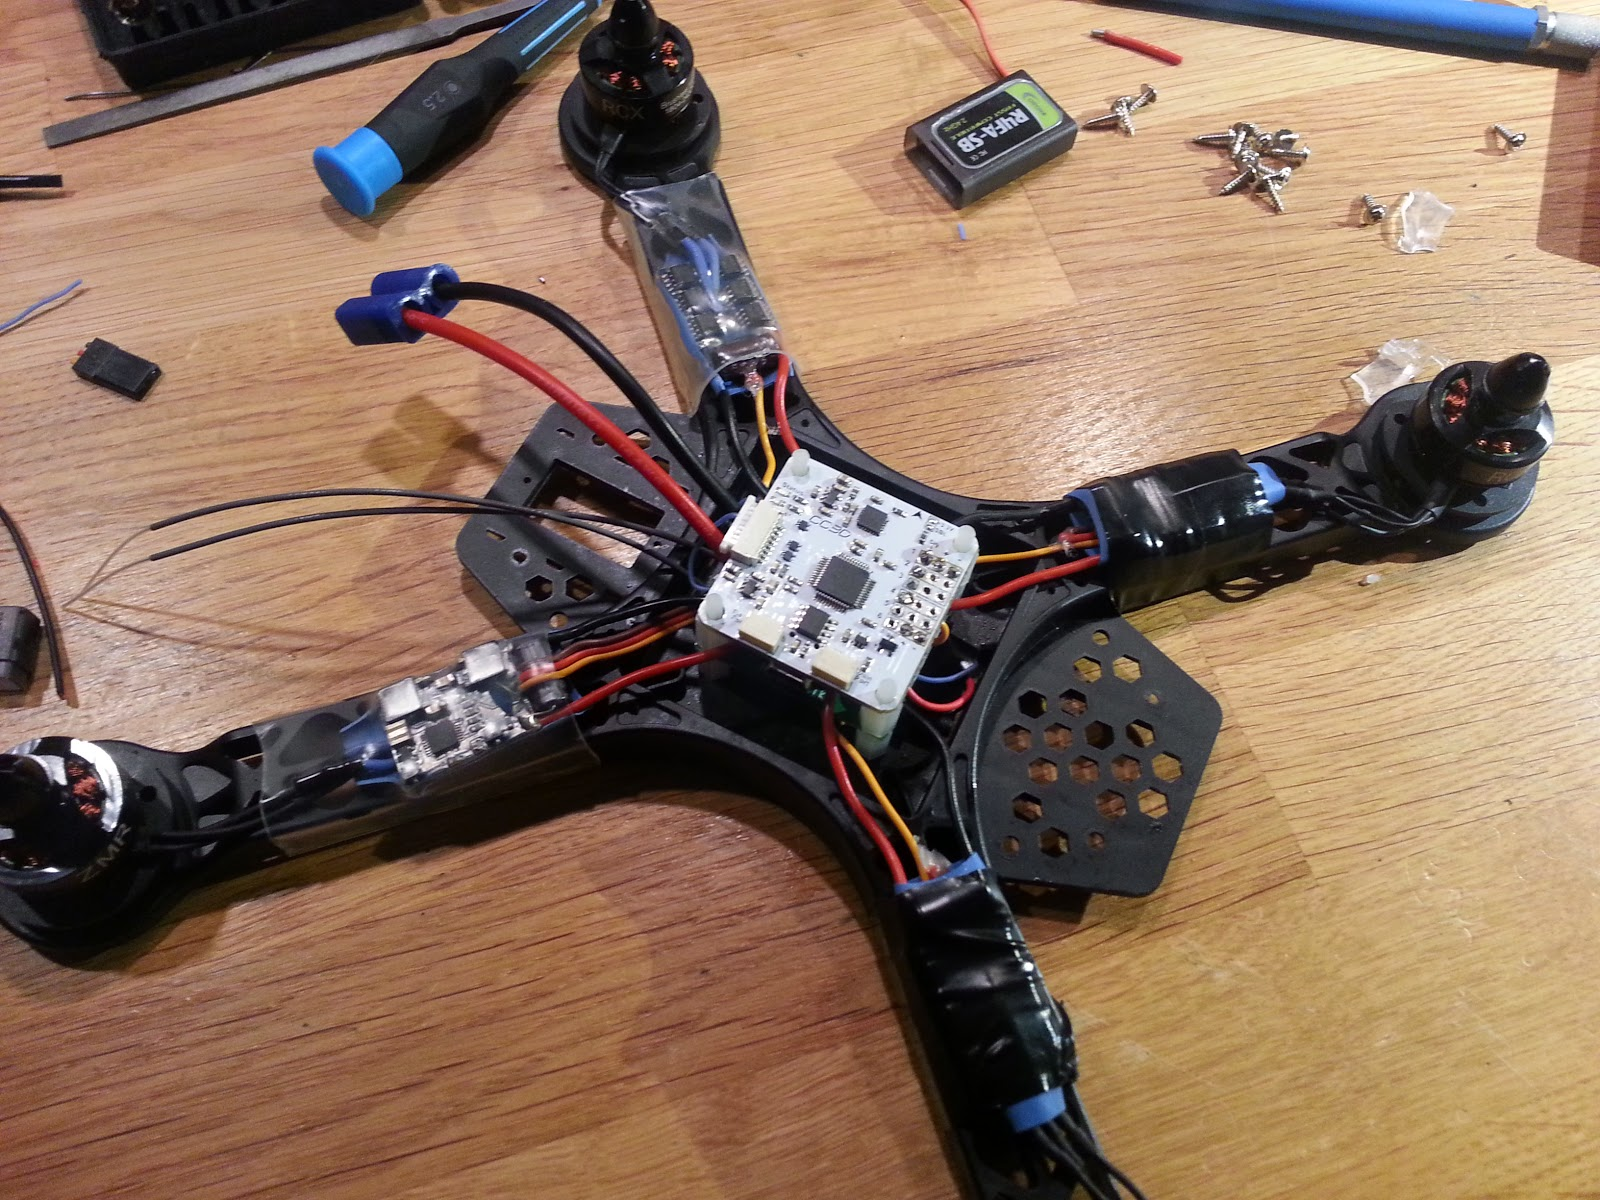 20140926_231707 wiring diagram quadcopter in addition kk2 quadcopter circuit Quadcopter Code at mifinder.co